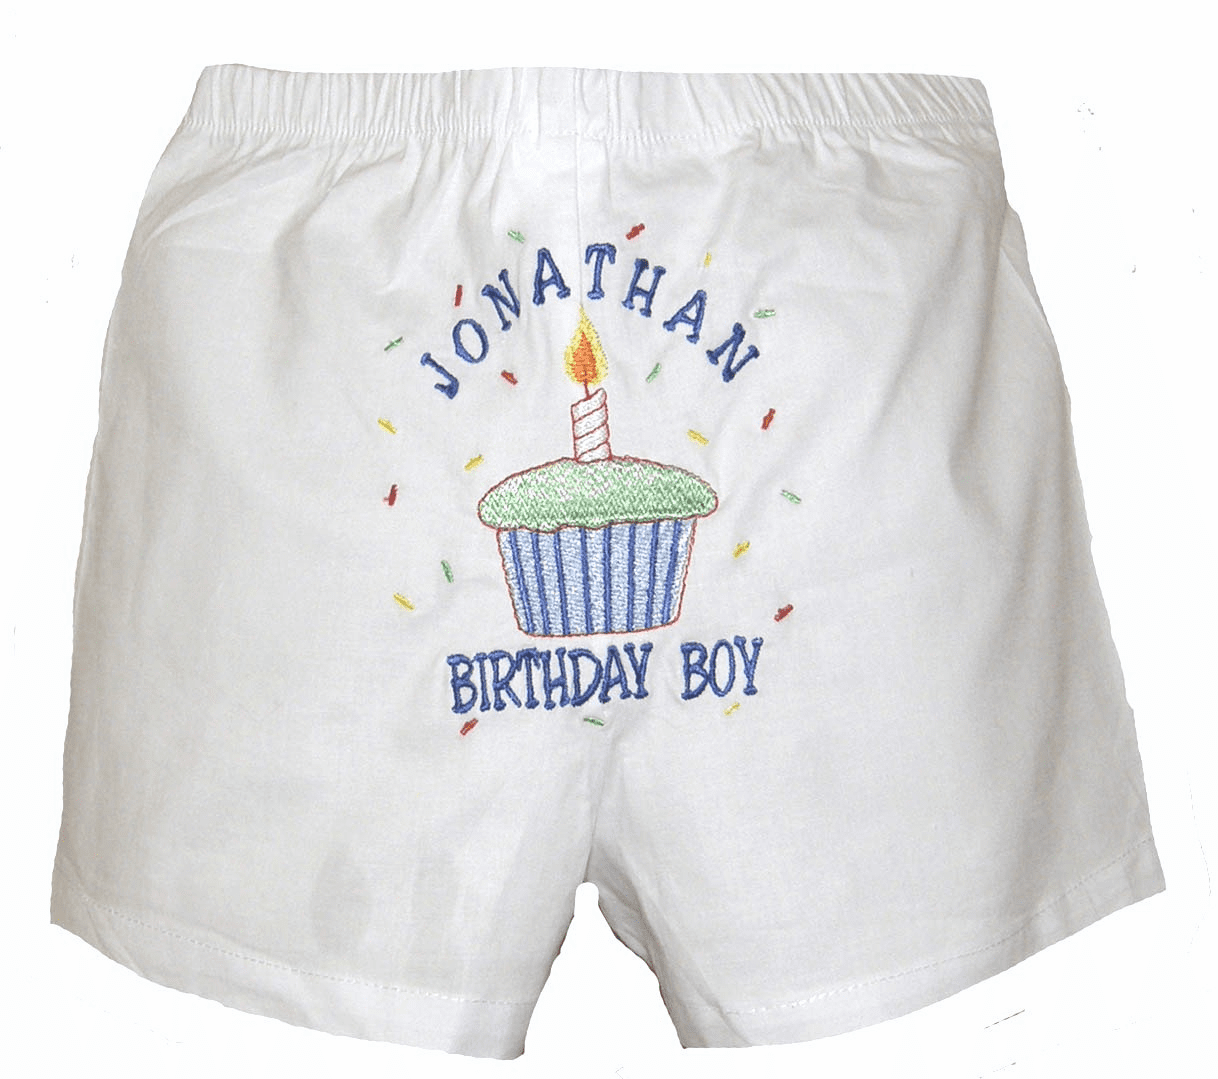 Baby Infant Boy Boxers Personalized for Birthday's & Other Occasions